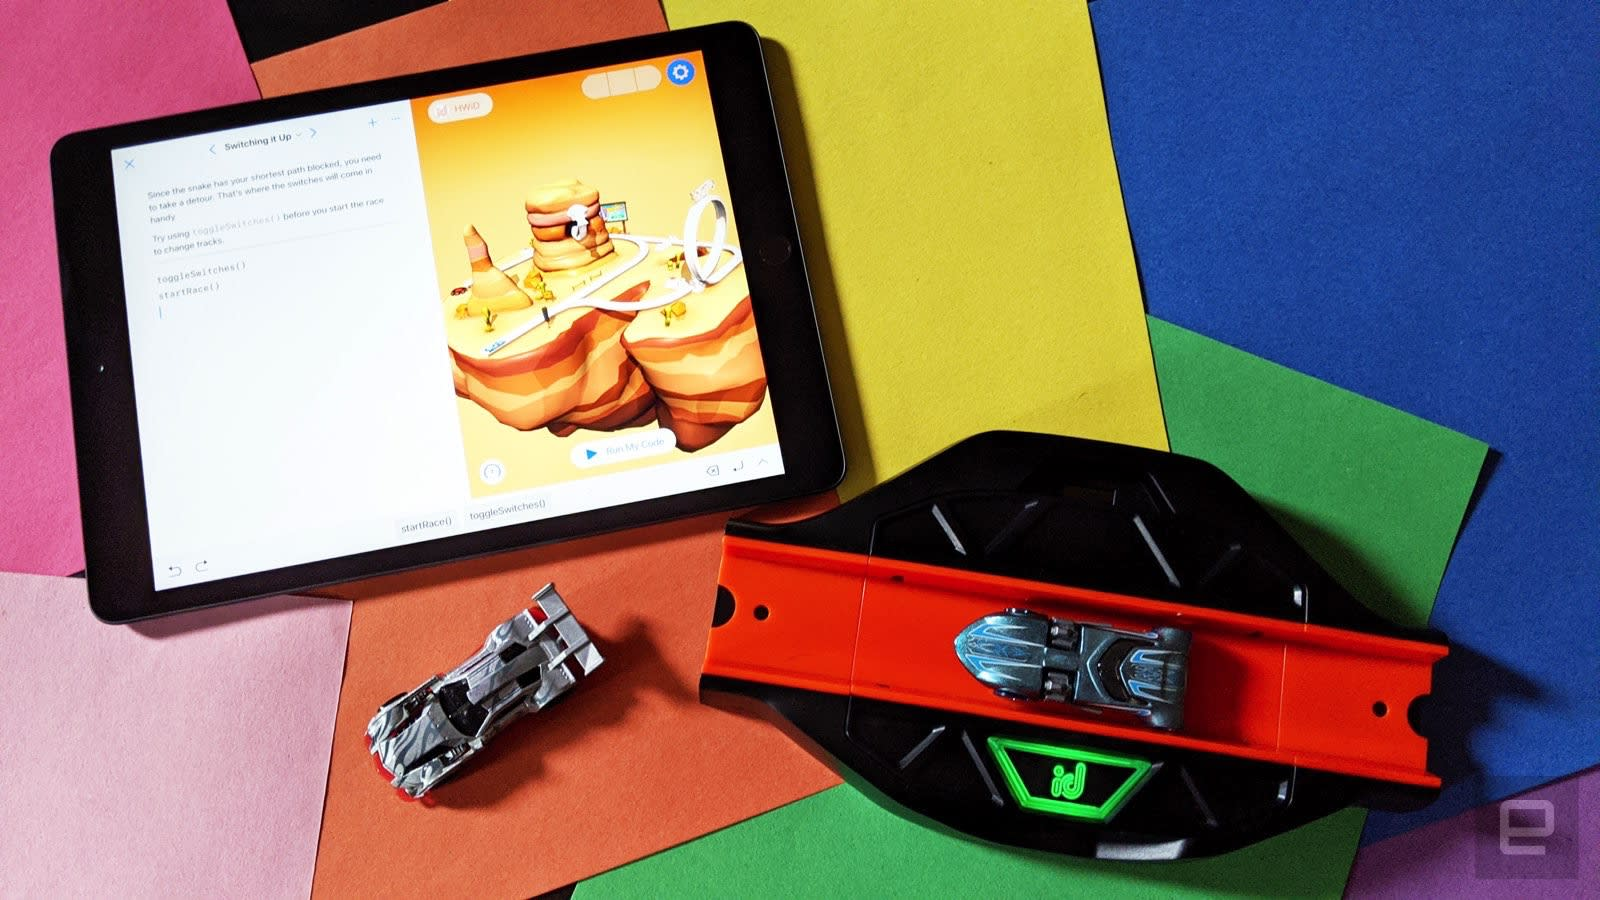 The new Hot Wheels coding kit requires fine motor skills updated